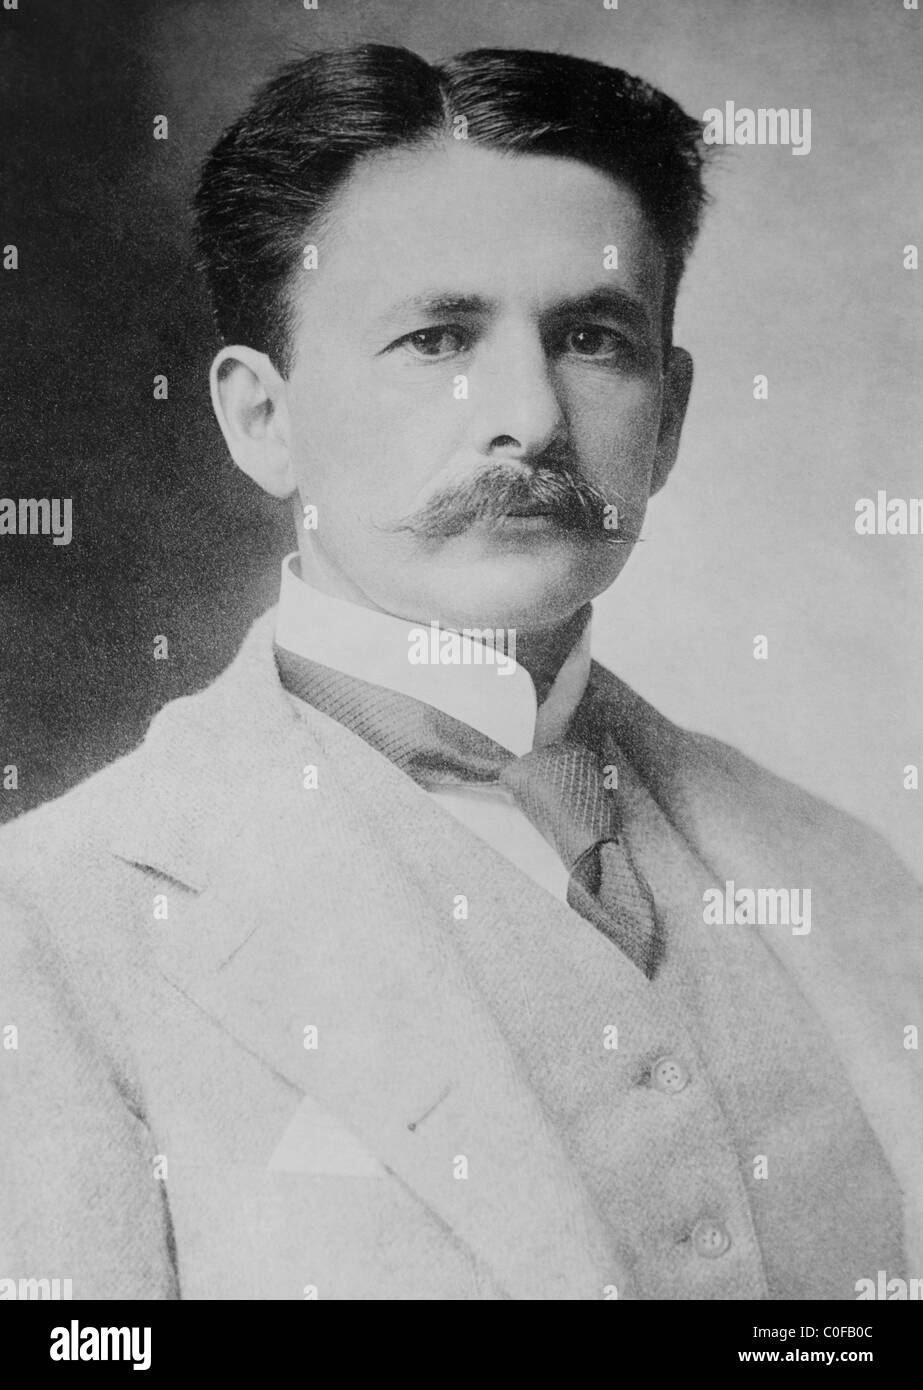 US physicist Albert Michelson (1852 - 1931) - winner of the 1907 Nobel Physics Prize and famed for measuring the - Stock Image